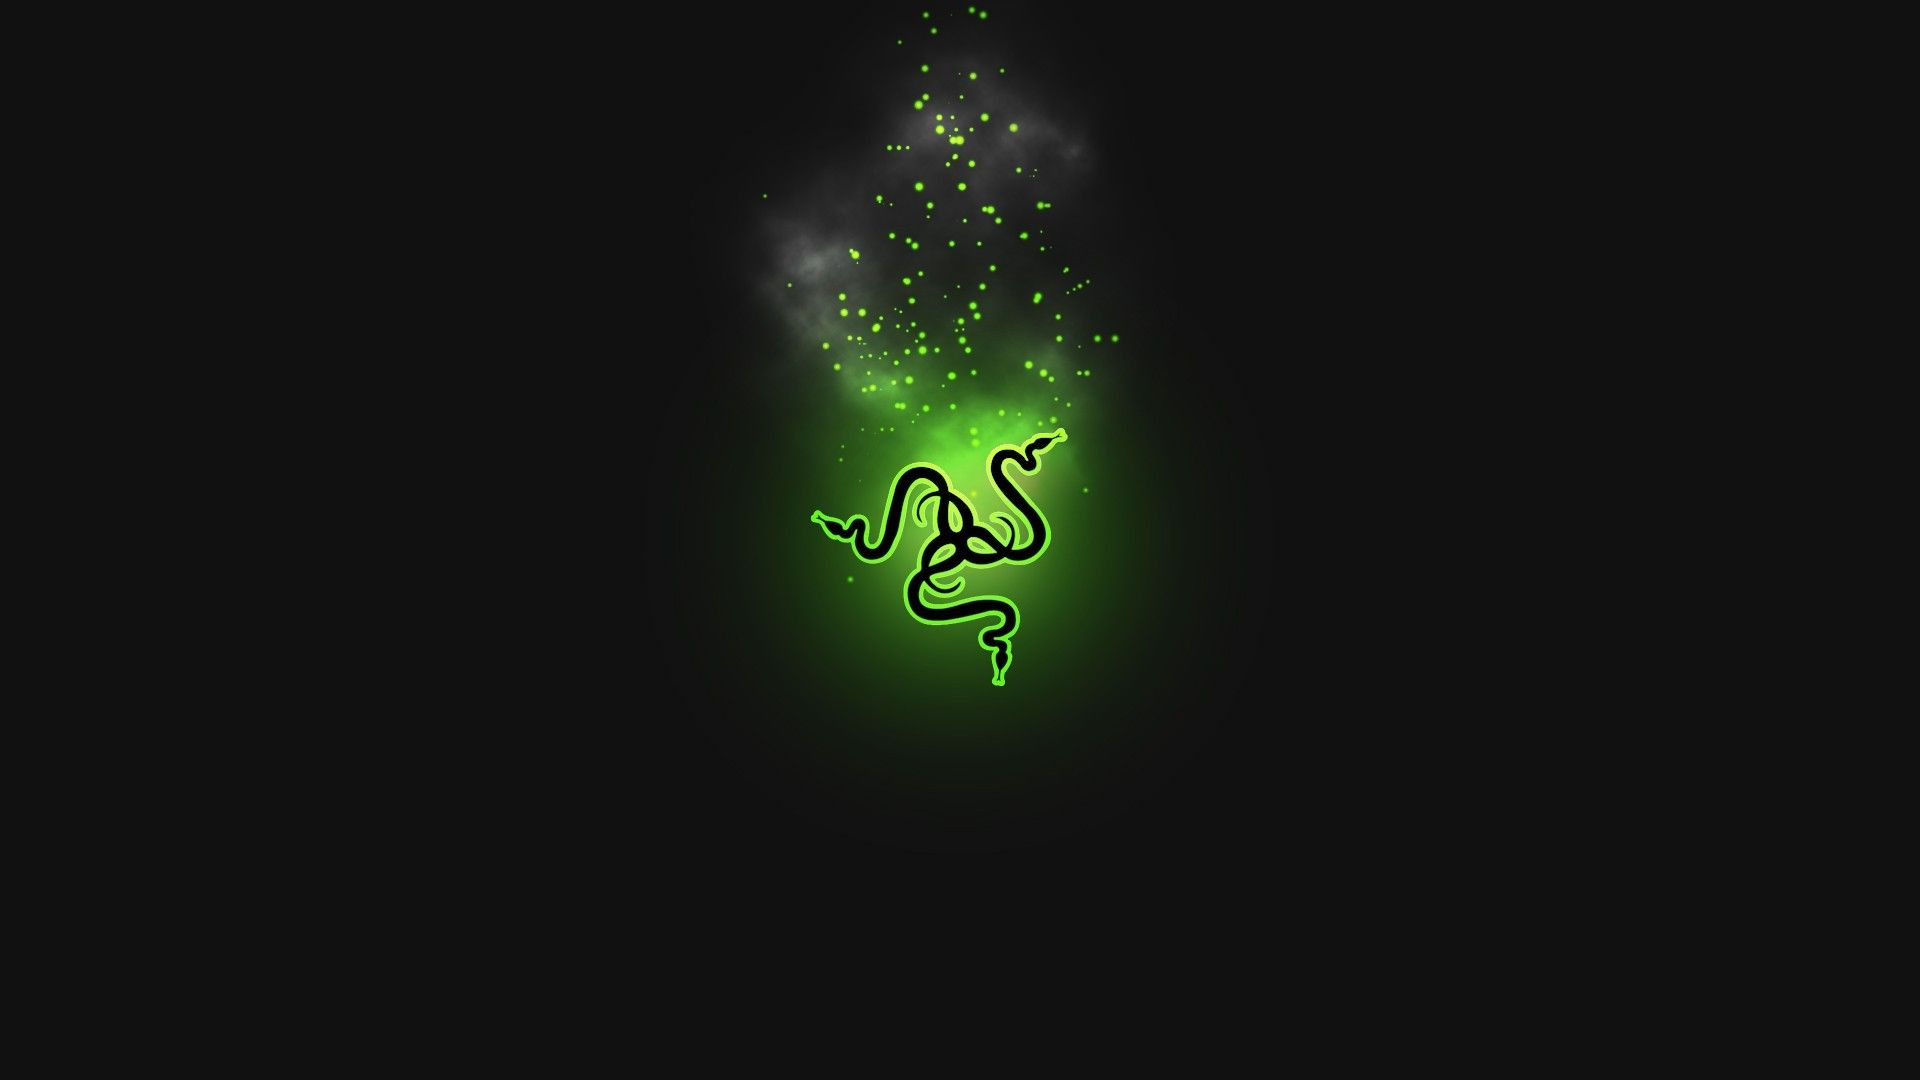 Logo Minimalism Razer Wallpaper Game Wallpaper Iphone 4k Gaming Wallpaper Gaming Wallpapers